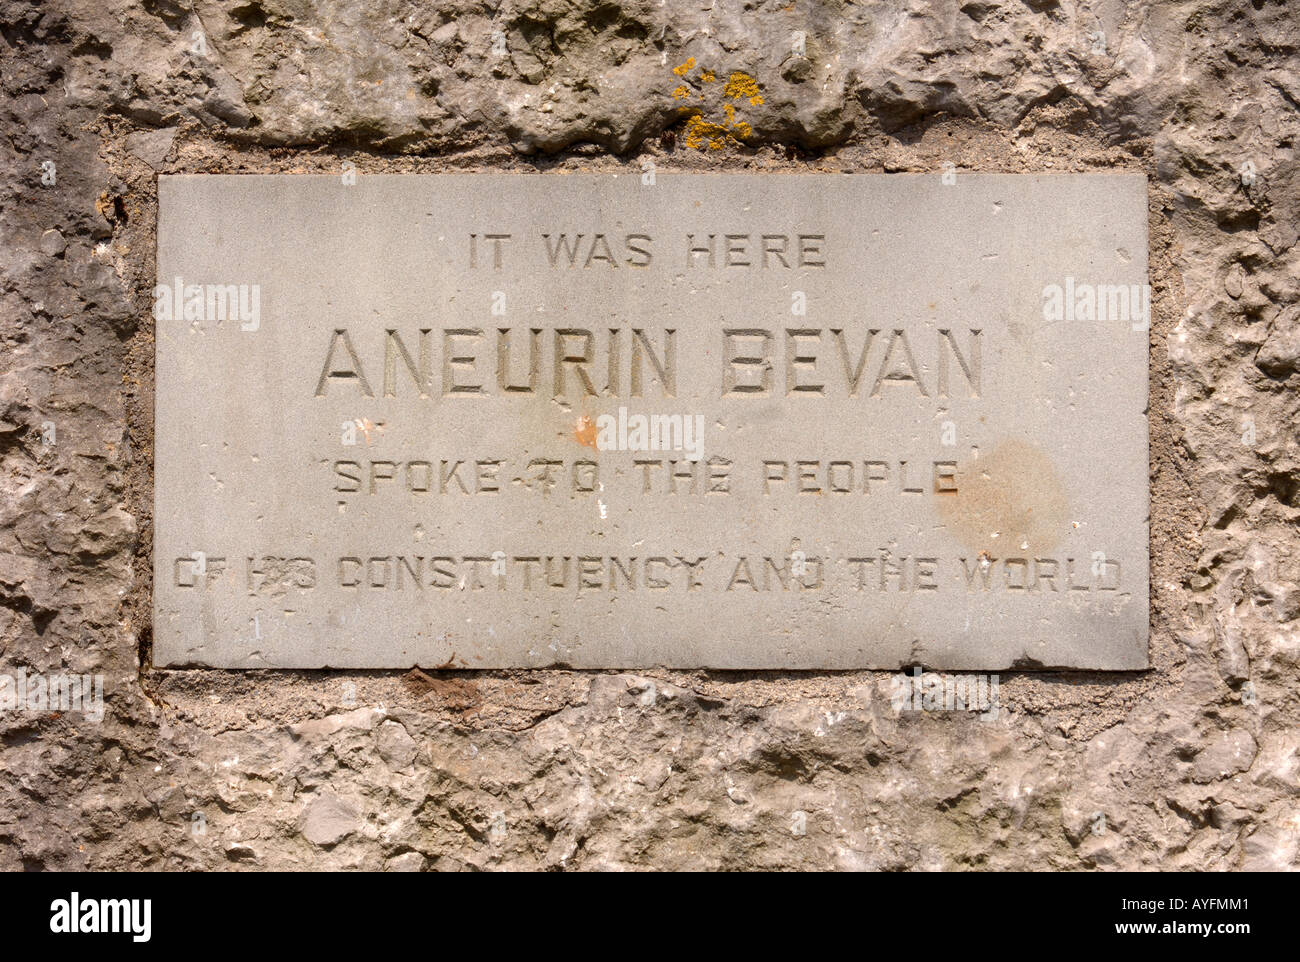 DETAIL OF THE PLAQUE ON THE THE MEMORIAL TO ANEURIN BEVAN - Stock Image